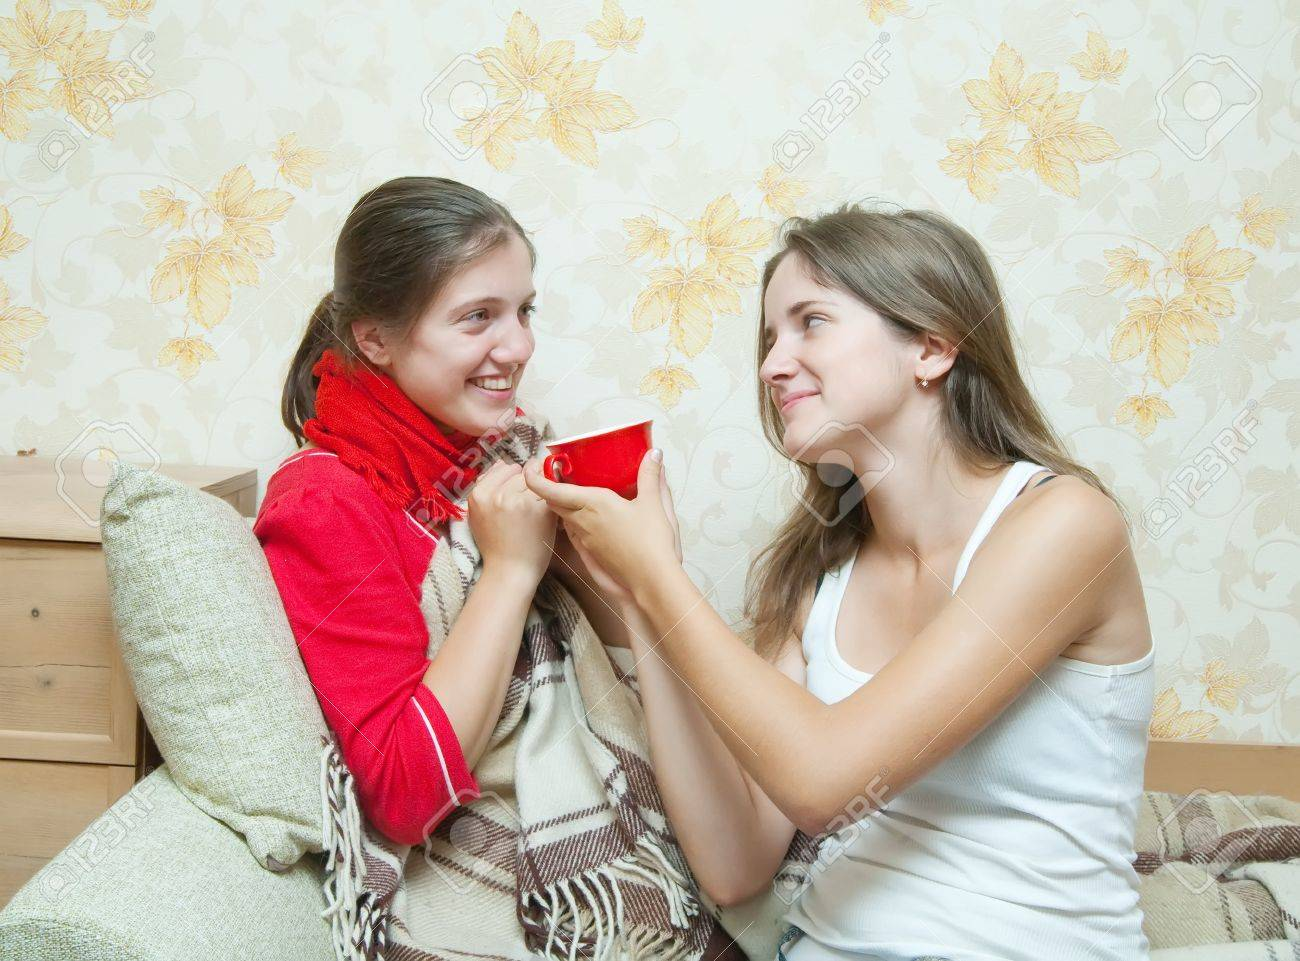 girl gives a cup to unwell girl Stock Photo - 7644570